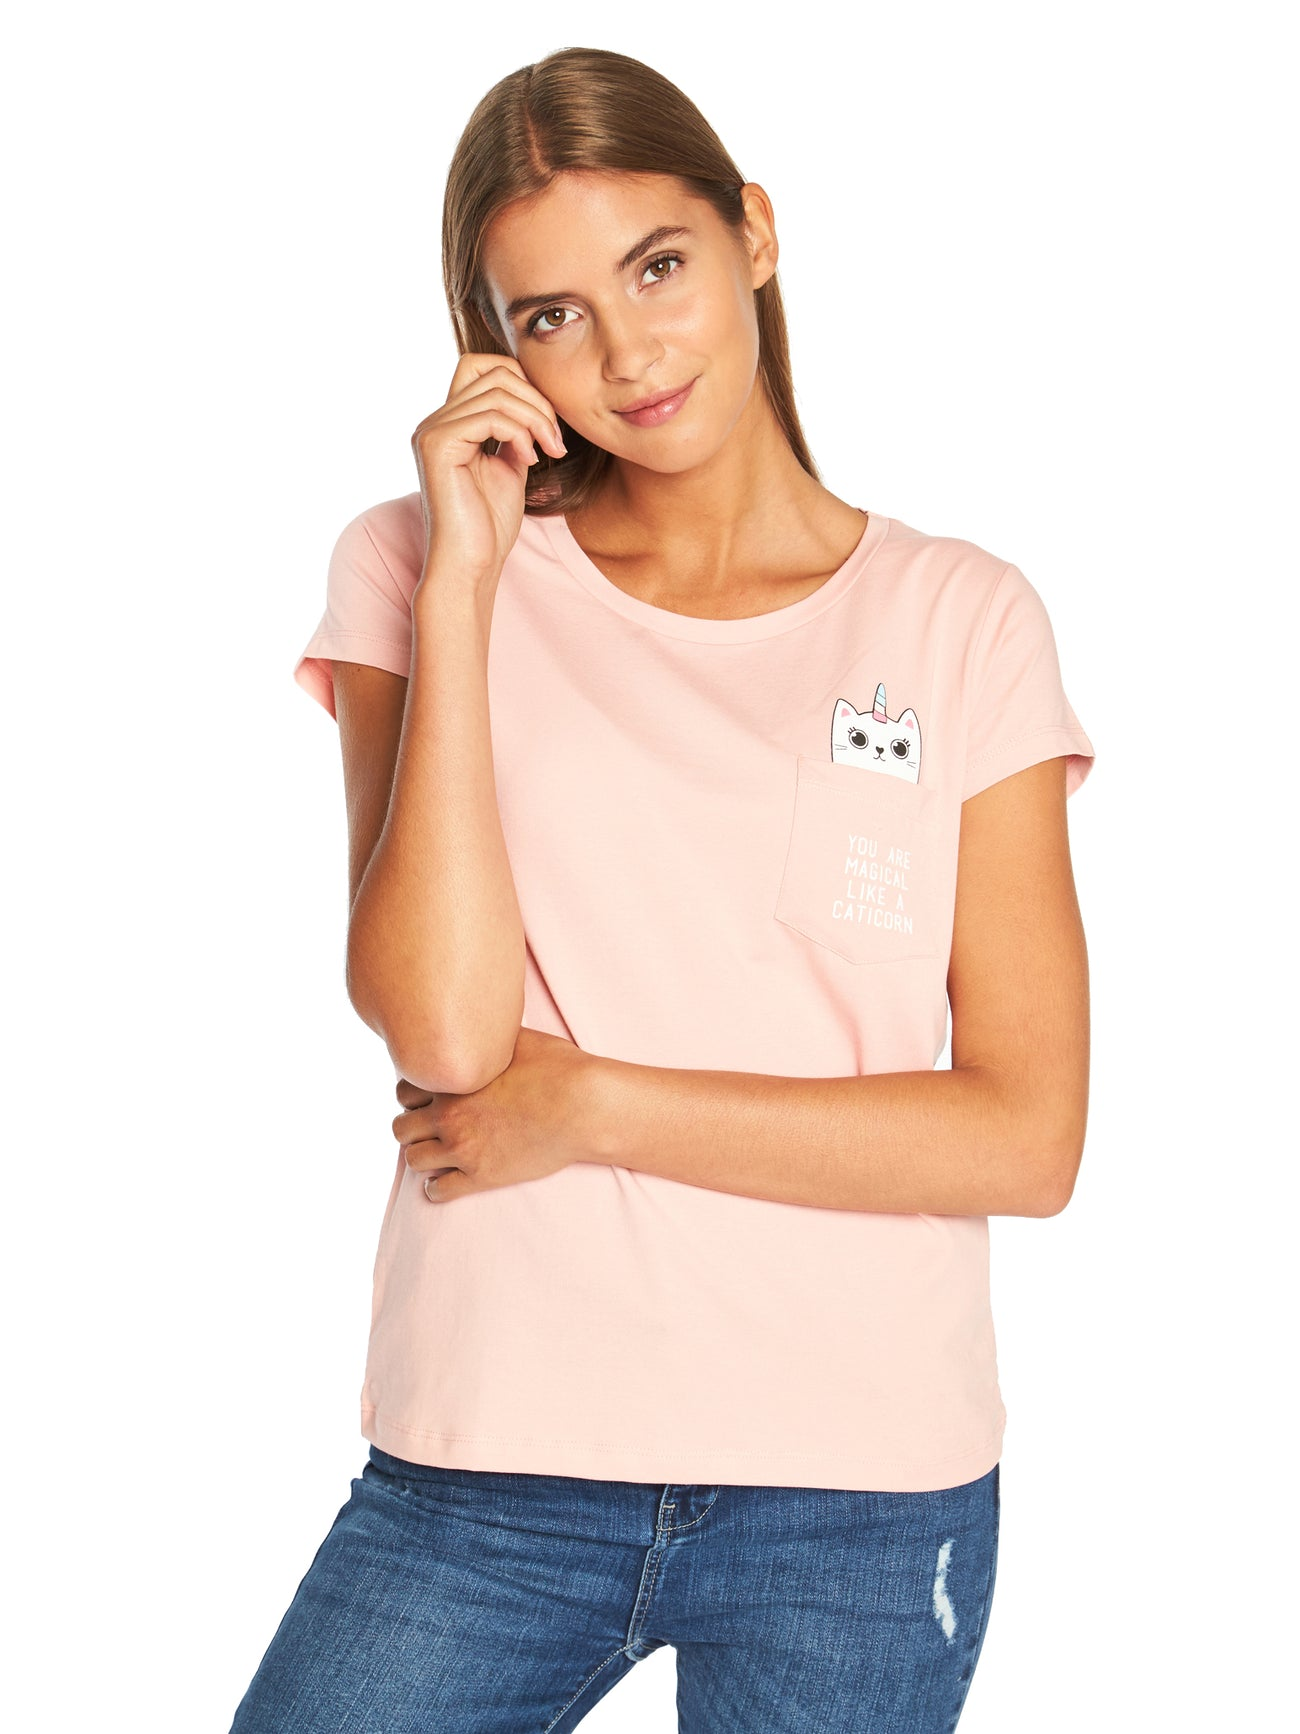 T-Shirt Caticorne Enfant